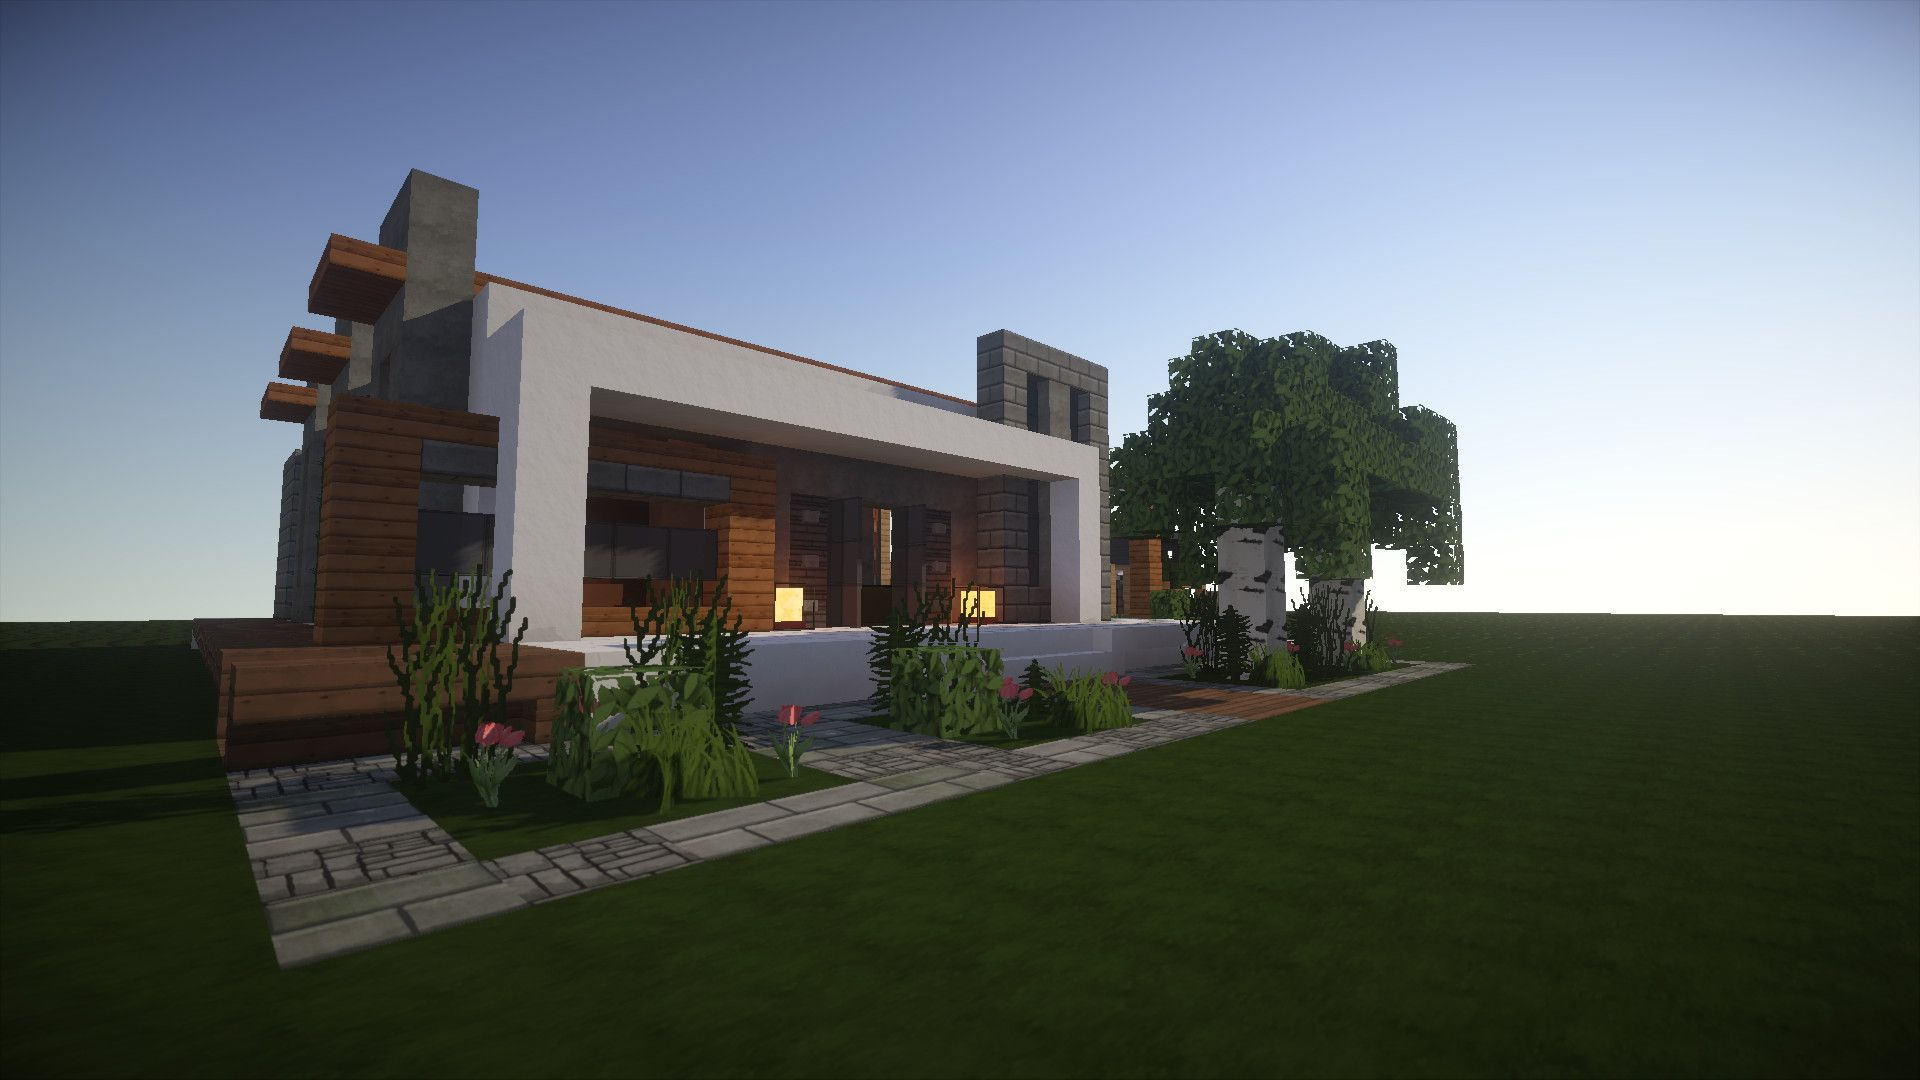 I like modern houses in Minecraft They give a good contrast to